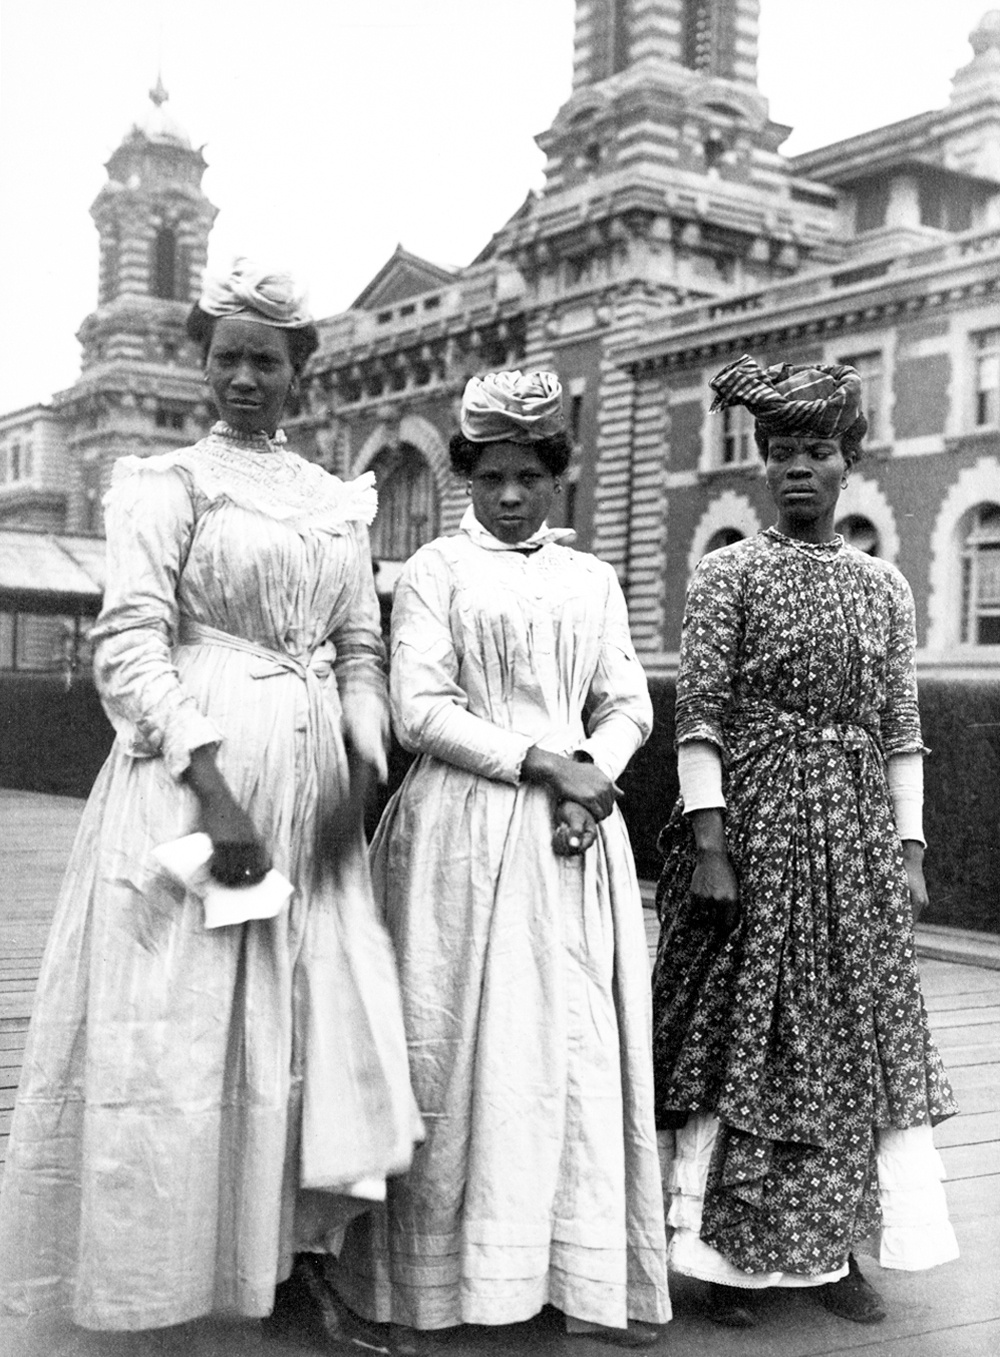 3 women on Ellis Island